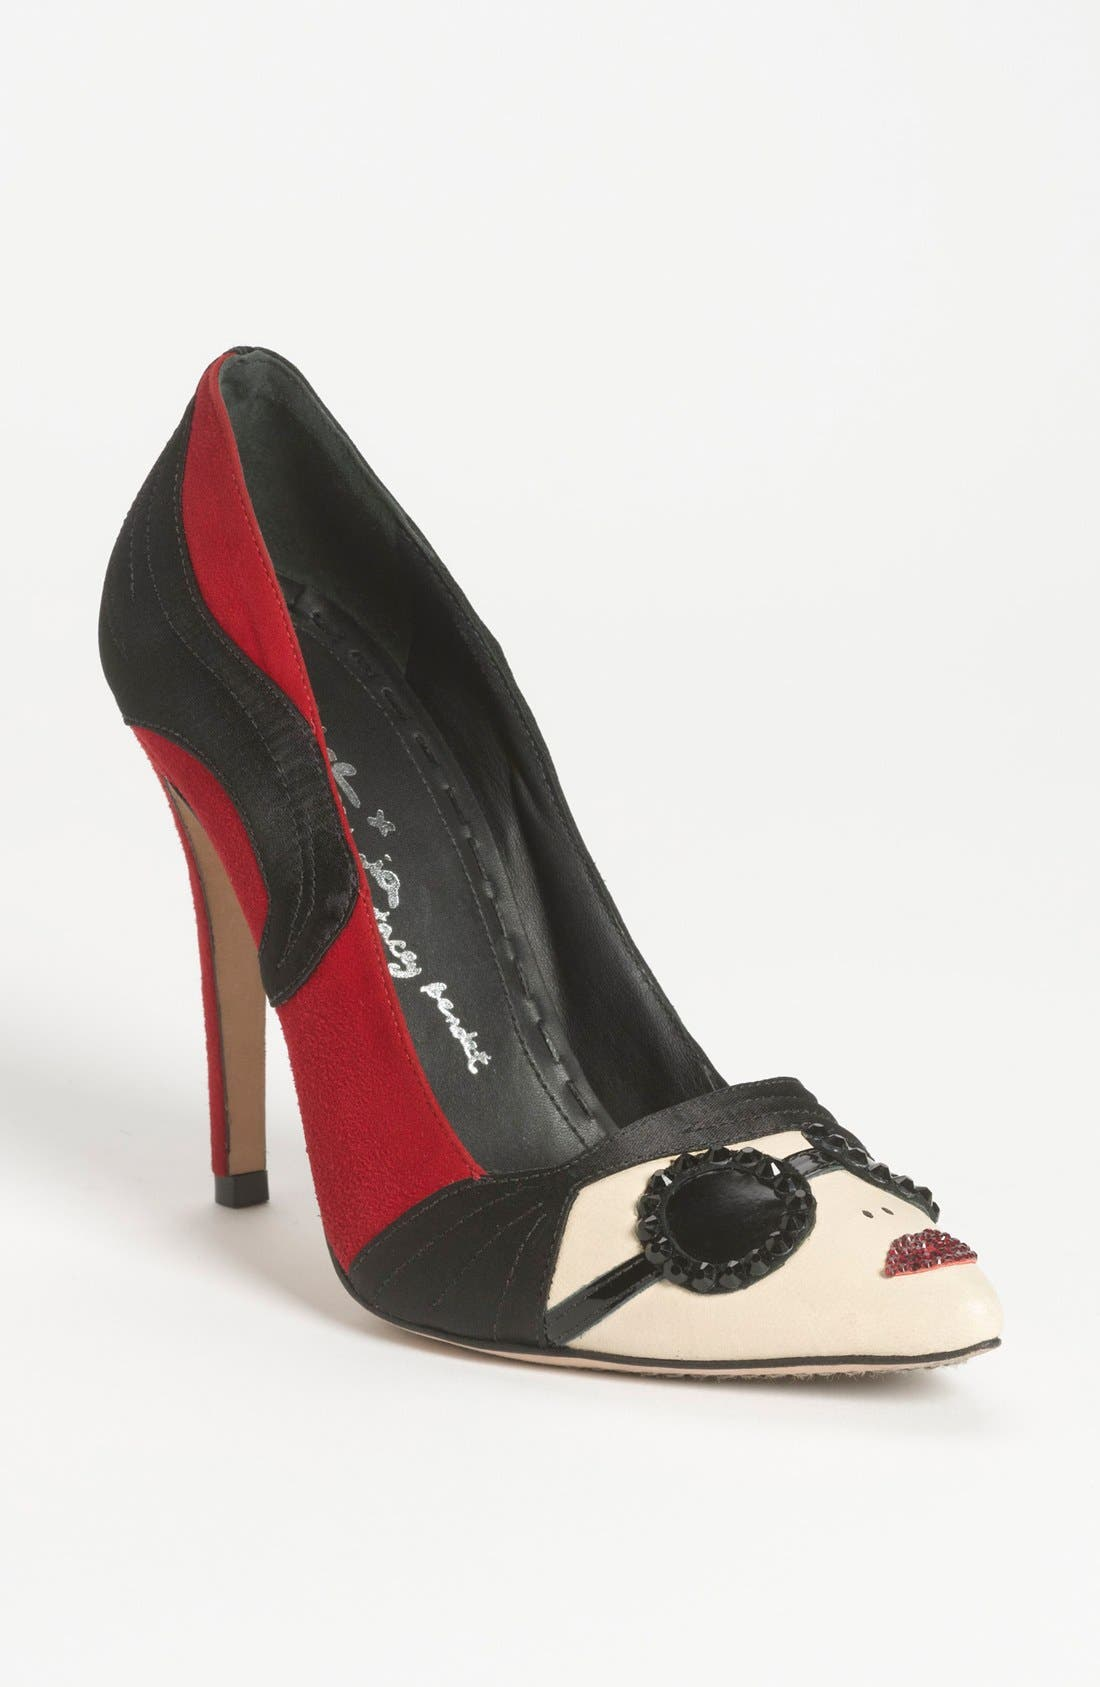 Main Image - Alice + Olivia 'Stacey' Pump